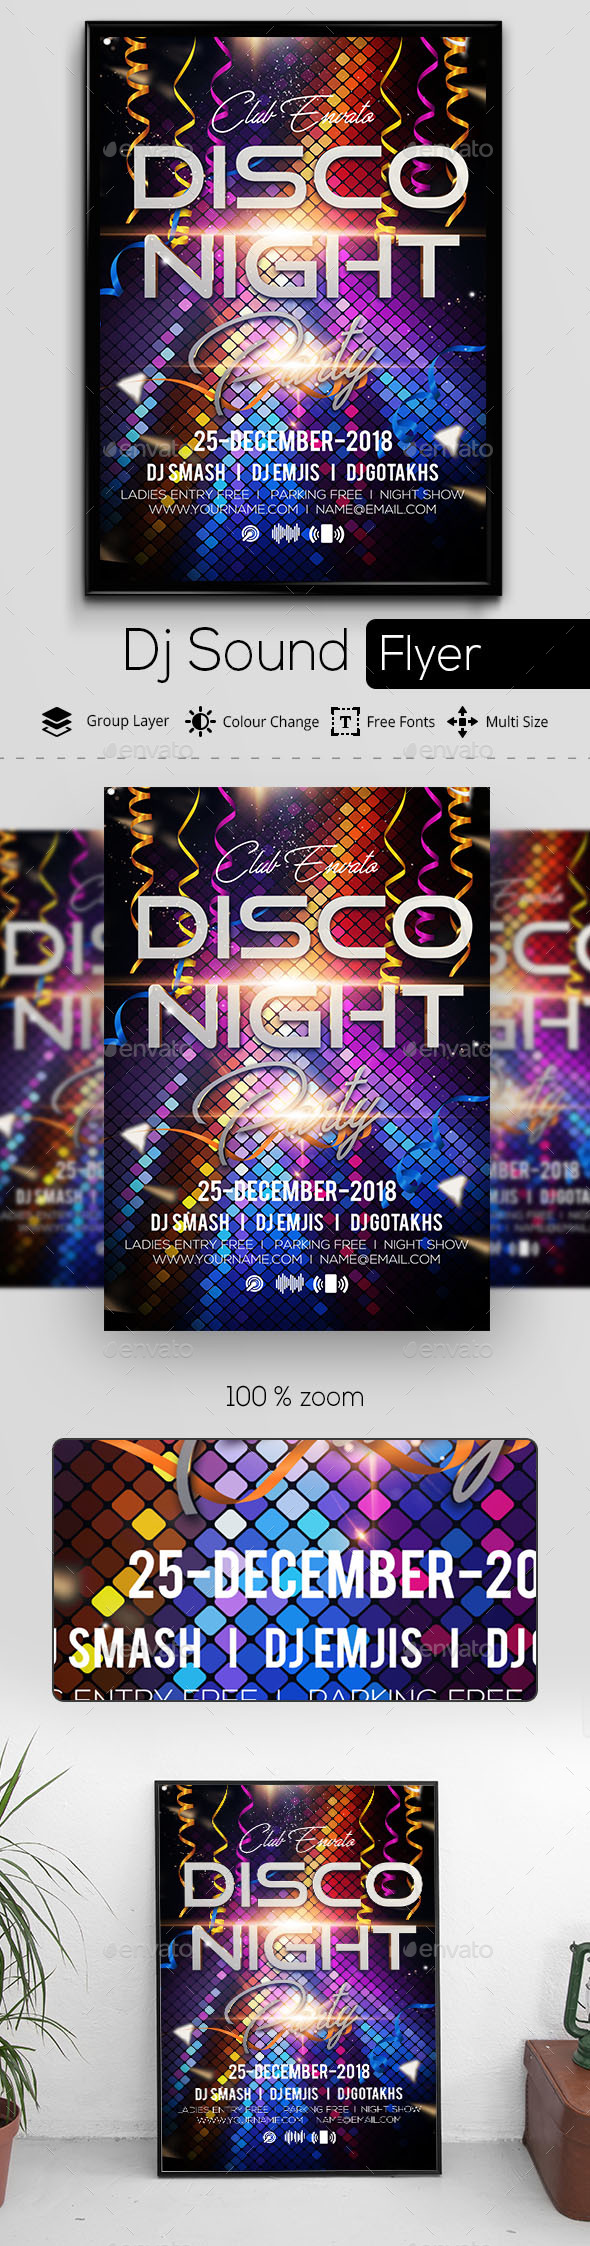 Disco Night Flyer - Clubs & Parties Events